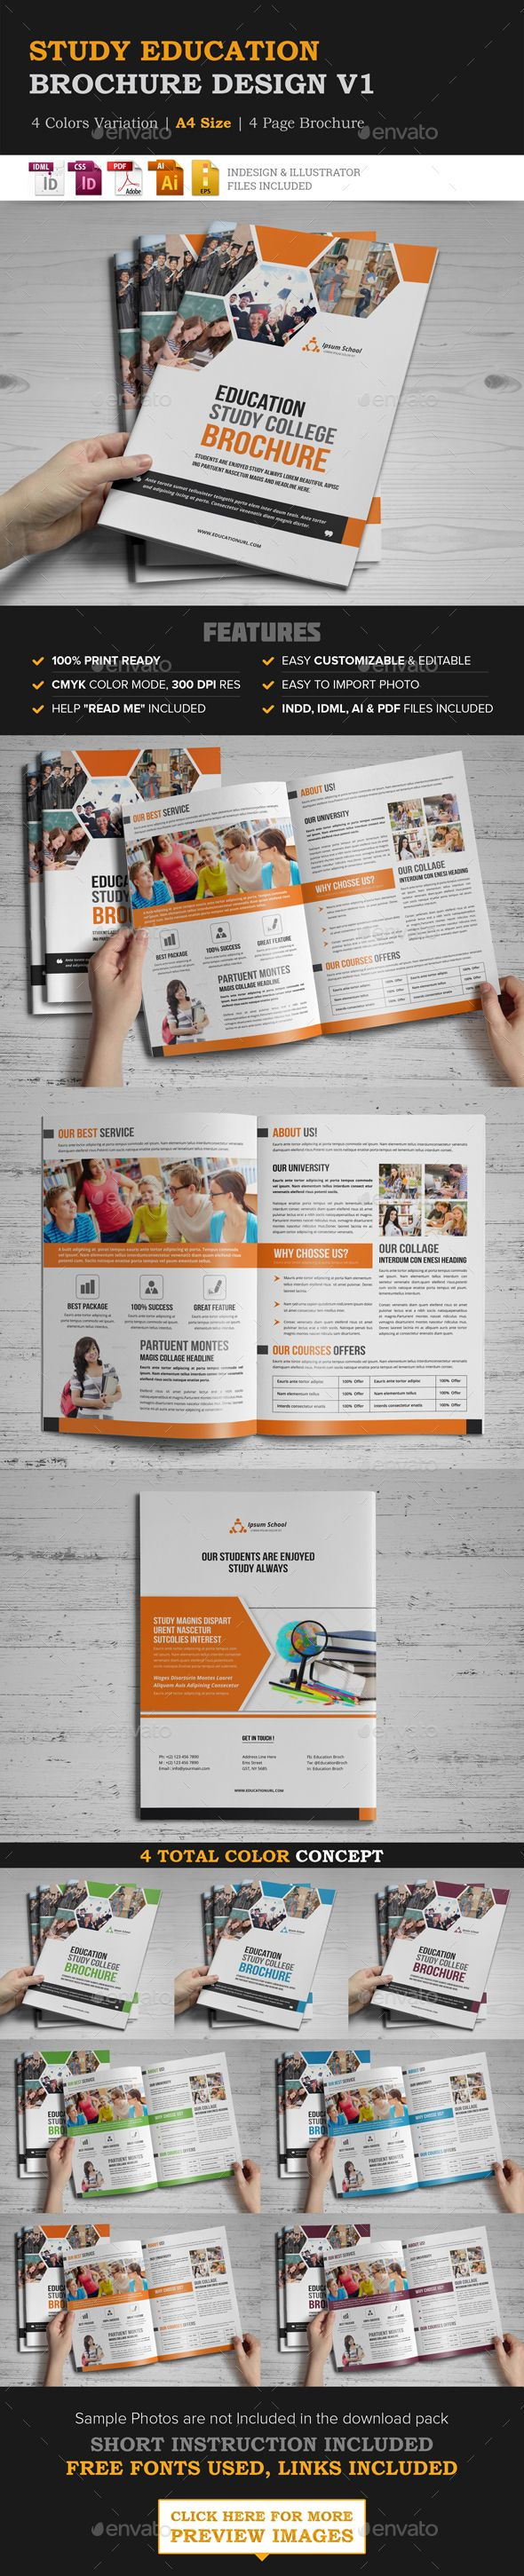 Education Brochure Design Template Vector EPS, InDesign INDD, AI ...